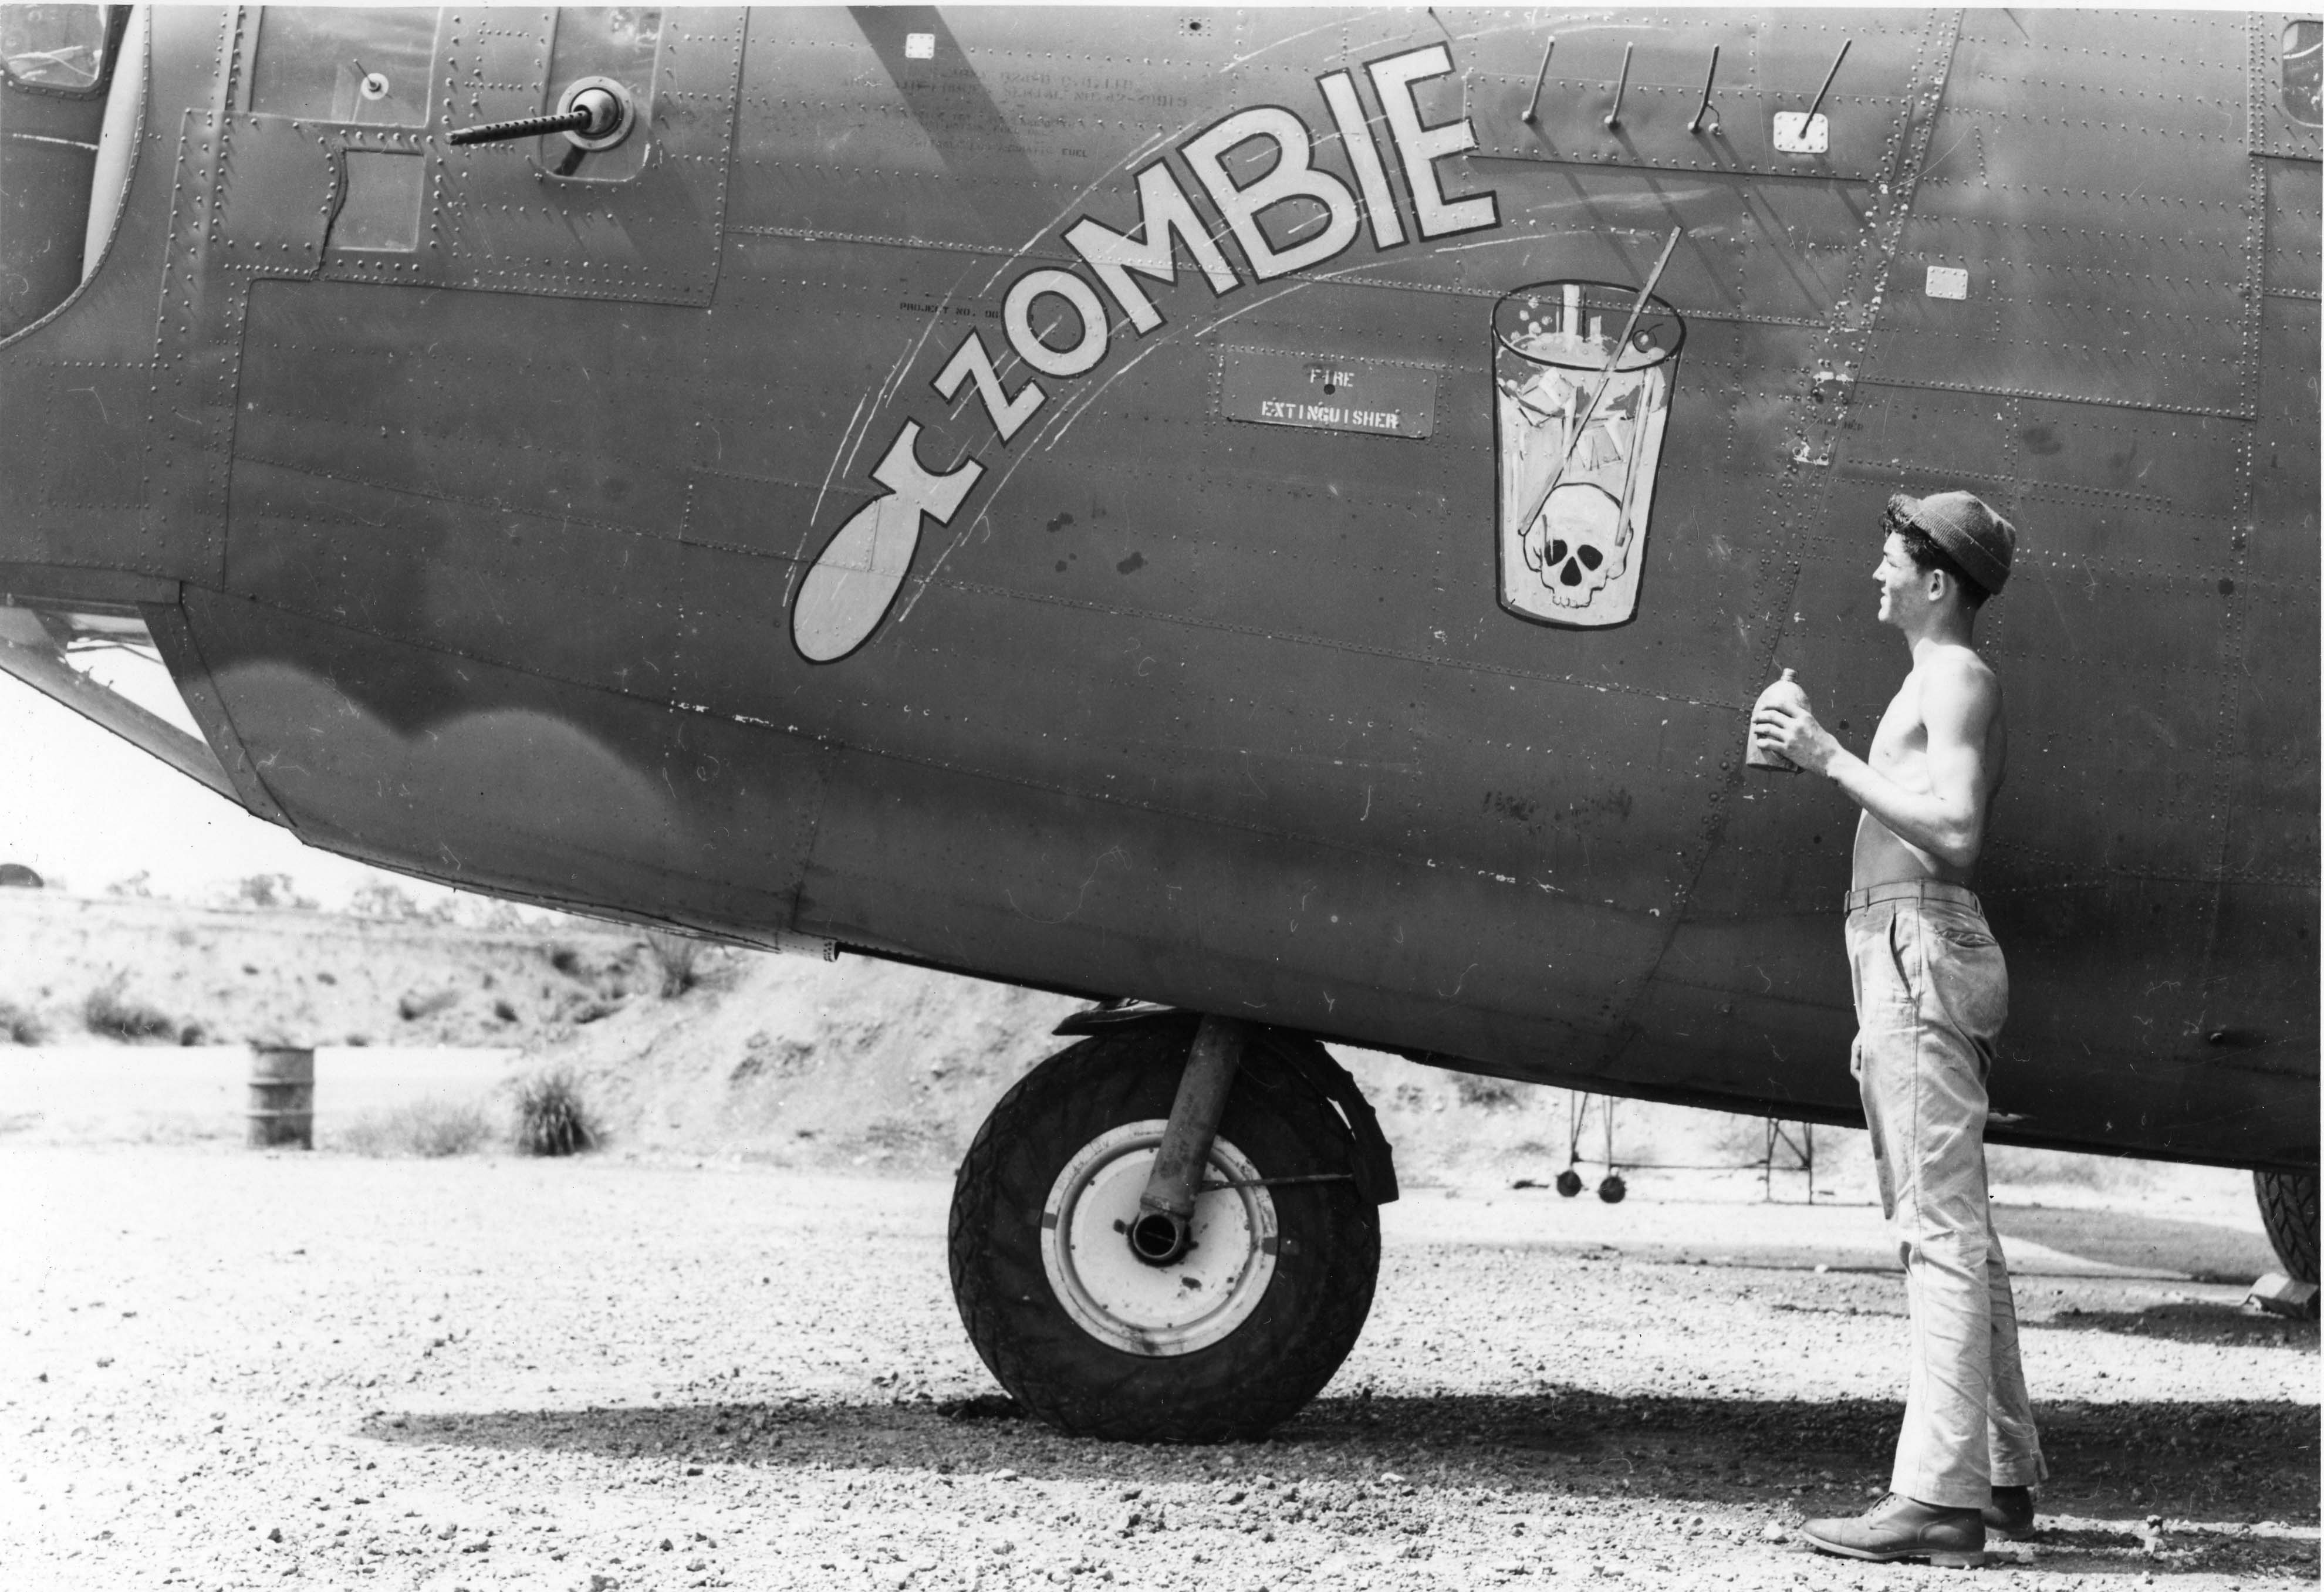 Zombie - B24 - 43rd Bomb Group - 64th Squadron - Serial #42-40913 - PH00005466 (Frederick German Collection)